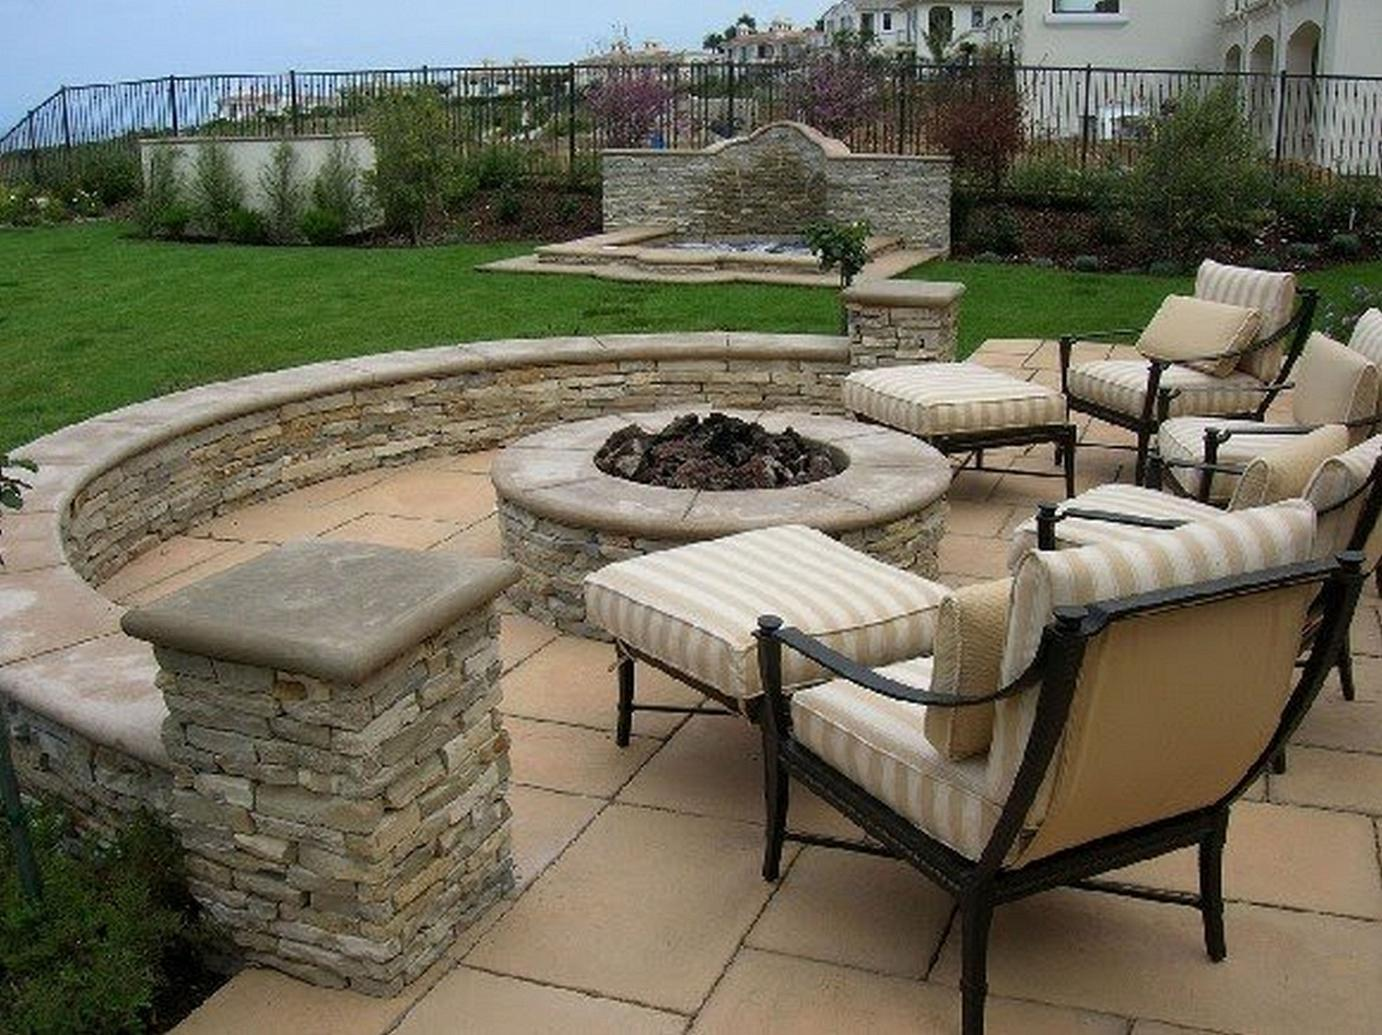 Backyard patio ideas for small spaces large and for Small backyard patio ideas